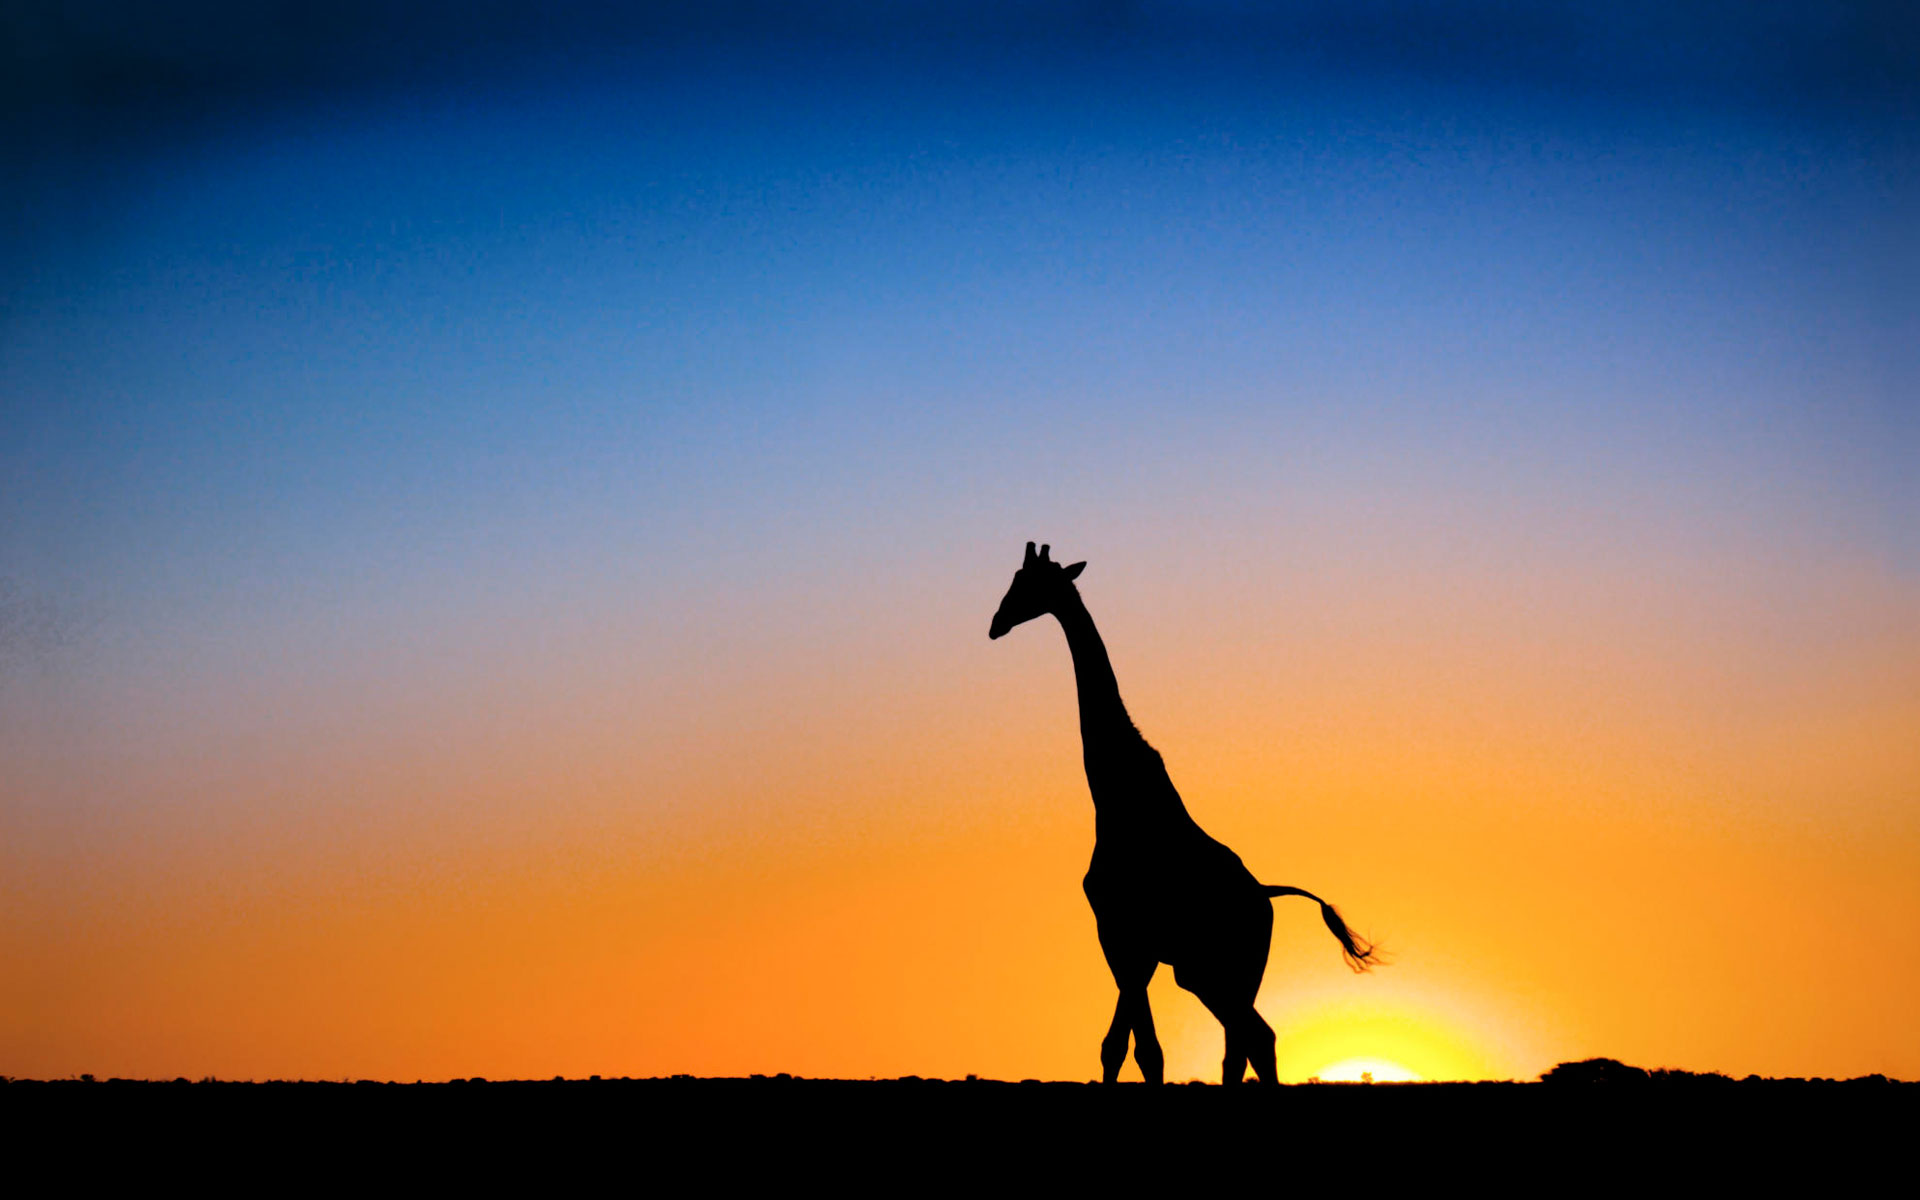 Sunset Giraffe Botswana 4213486 1920x1200 All For Desktop 1920x1200